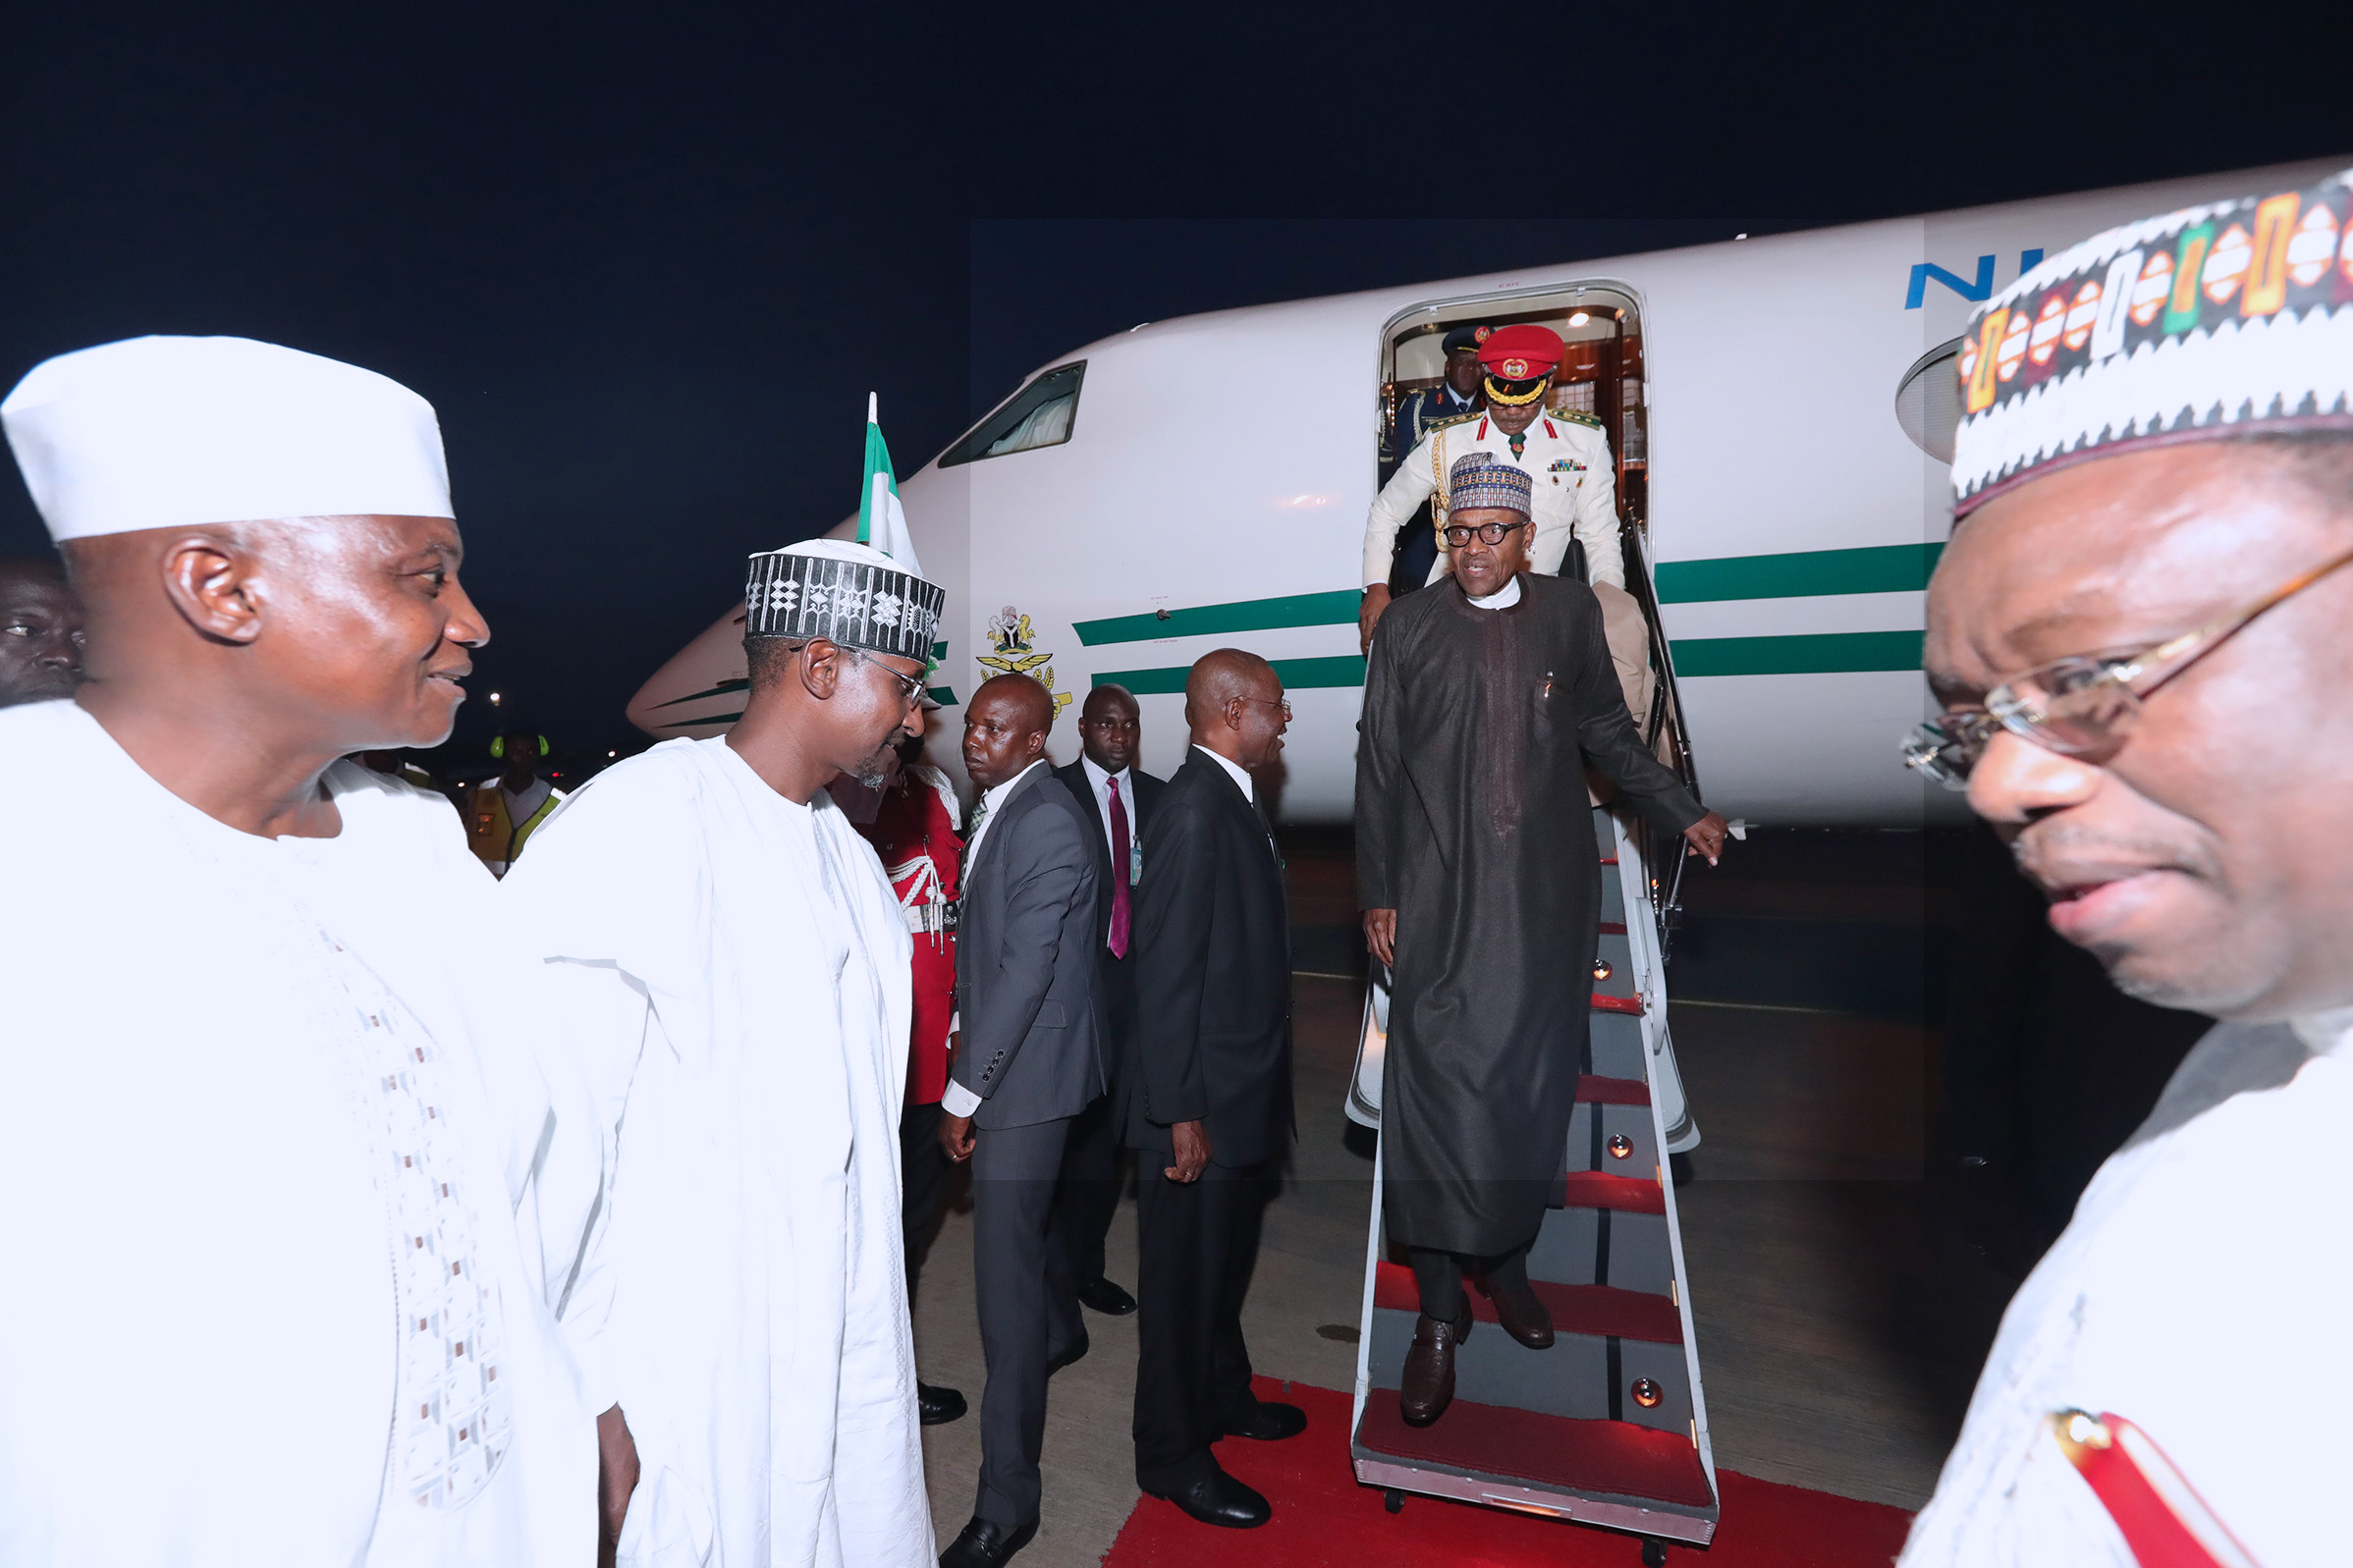 PRESIDENT BUHARI RETURNS FROM UK A. President Muhammadu Buhari returns Abuja from the United Kingdom. Waiting to receive him is the Minister of FCT Mallam Muhammad Musa Bello at the Presidential Wings of Nnamdi Azikiwe International Airport Abuja. PHOTO; SUNDAY AGHAEZE. MAY 11 2018